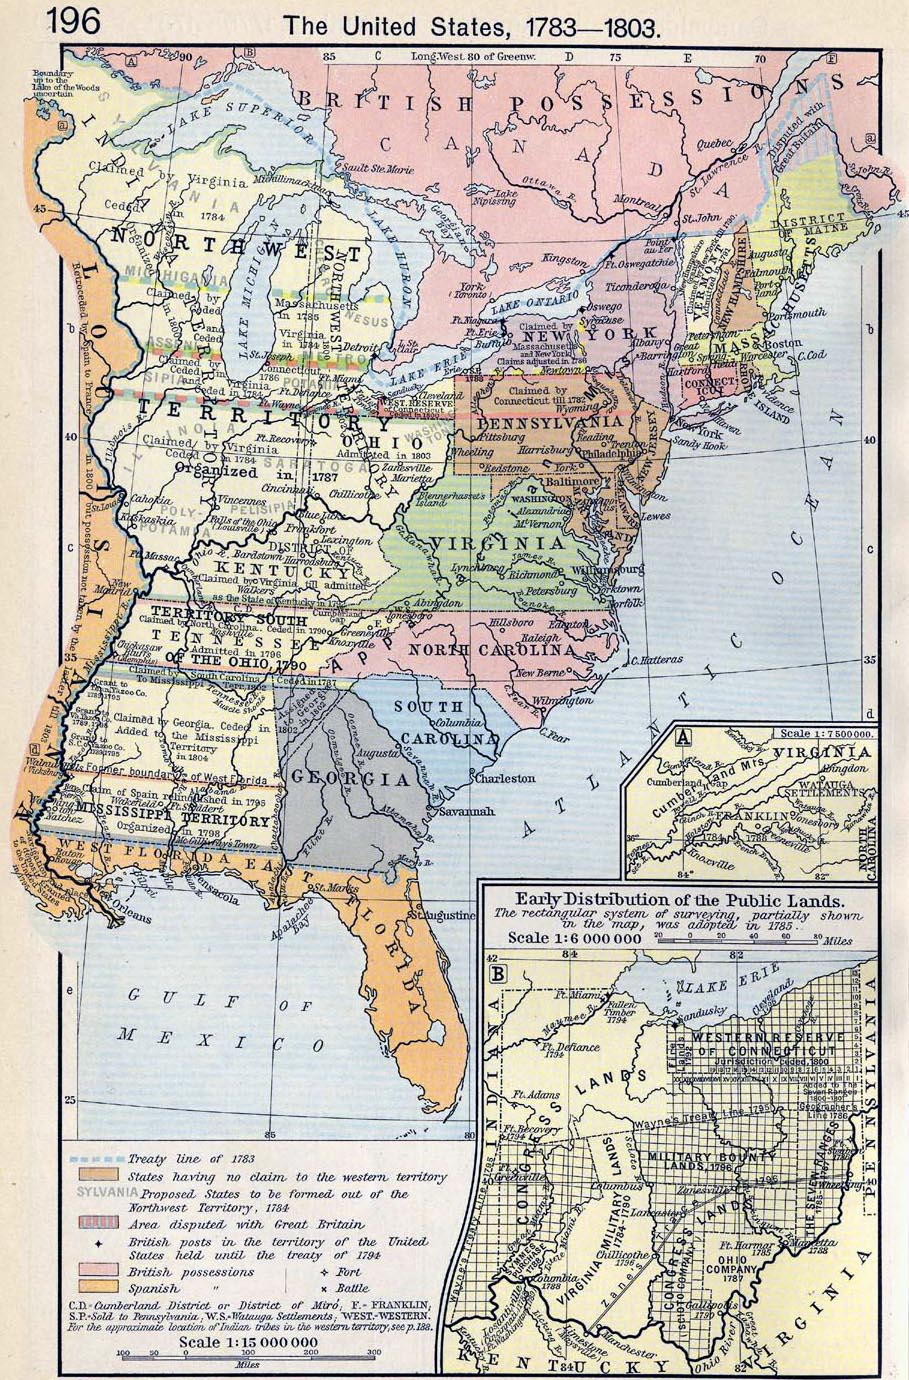 Map of the United States 1783-1803